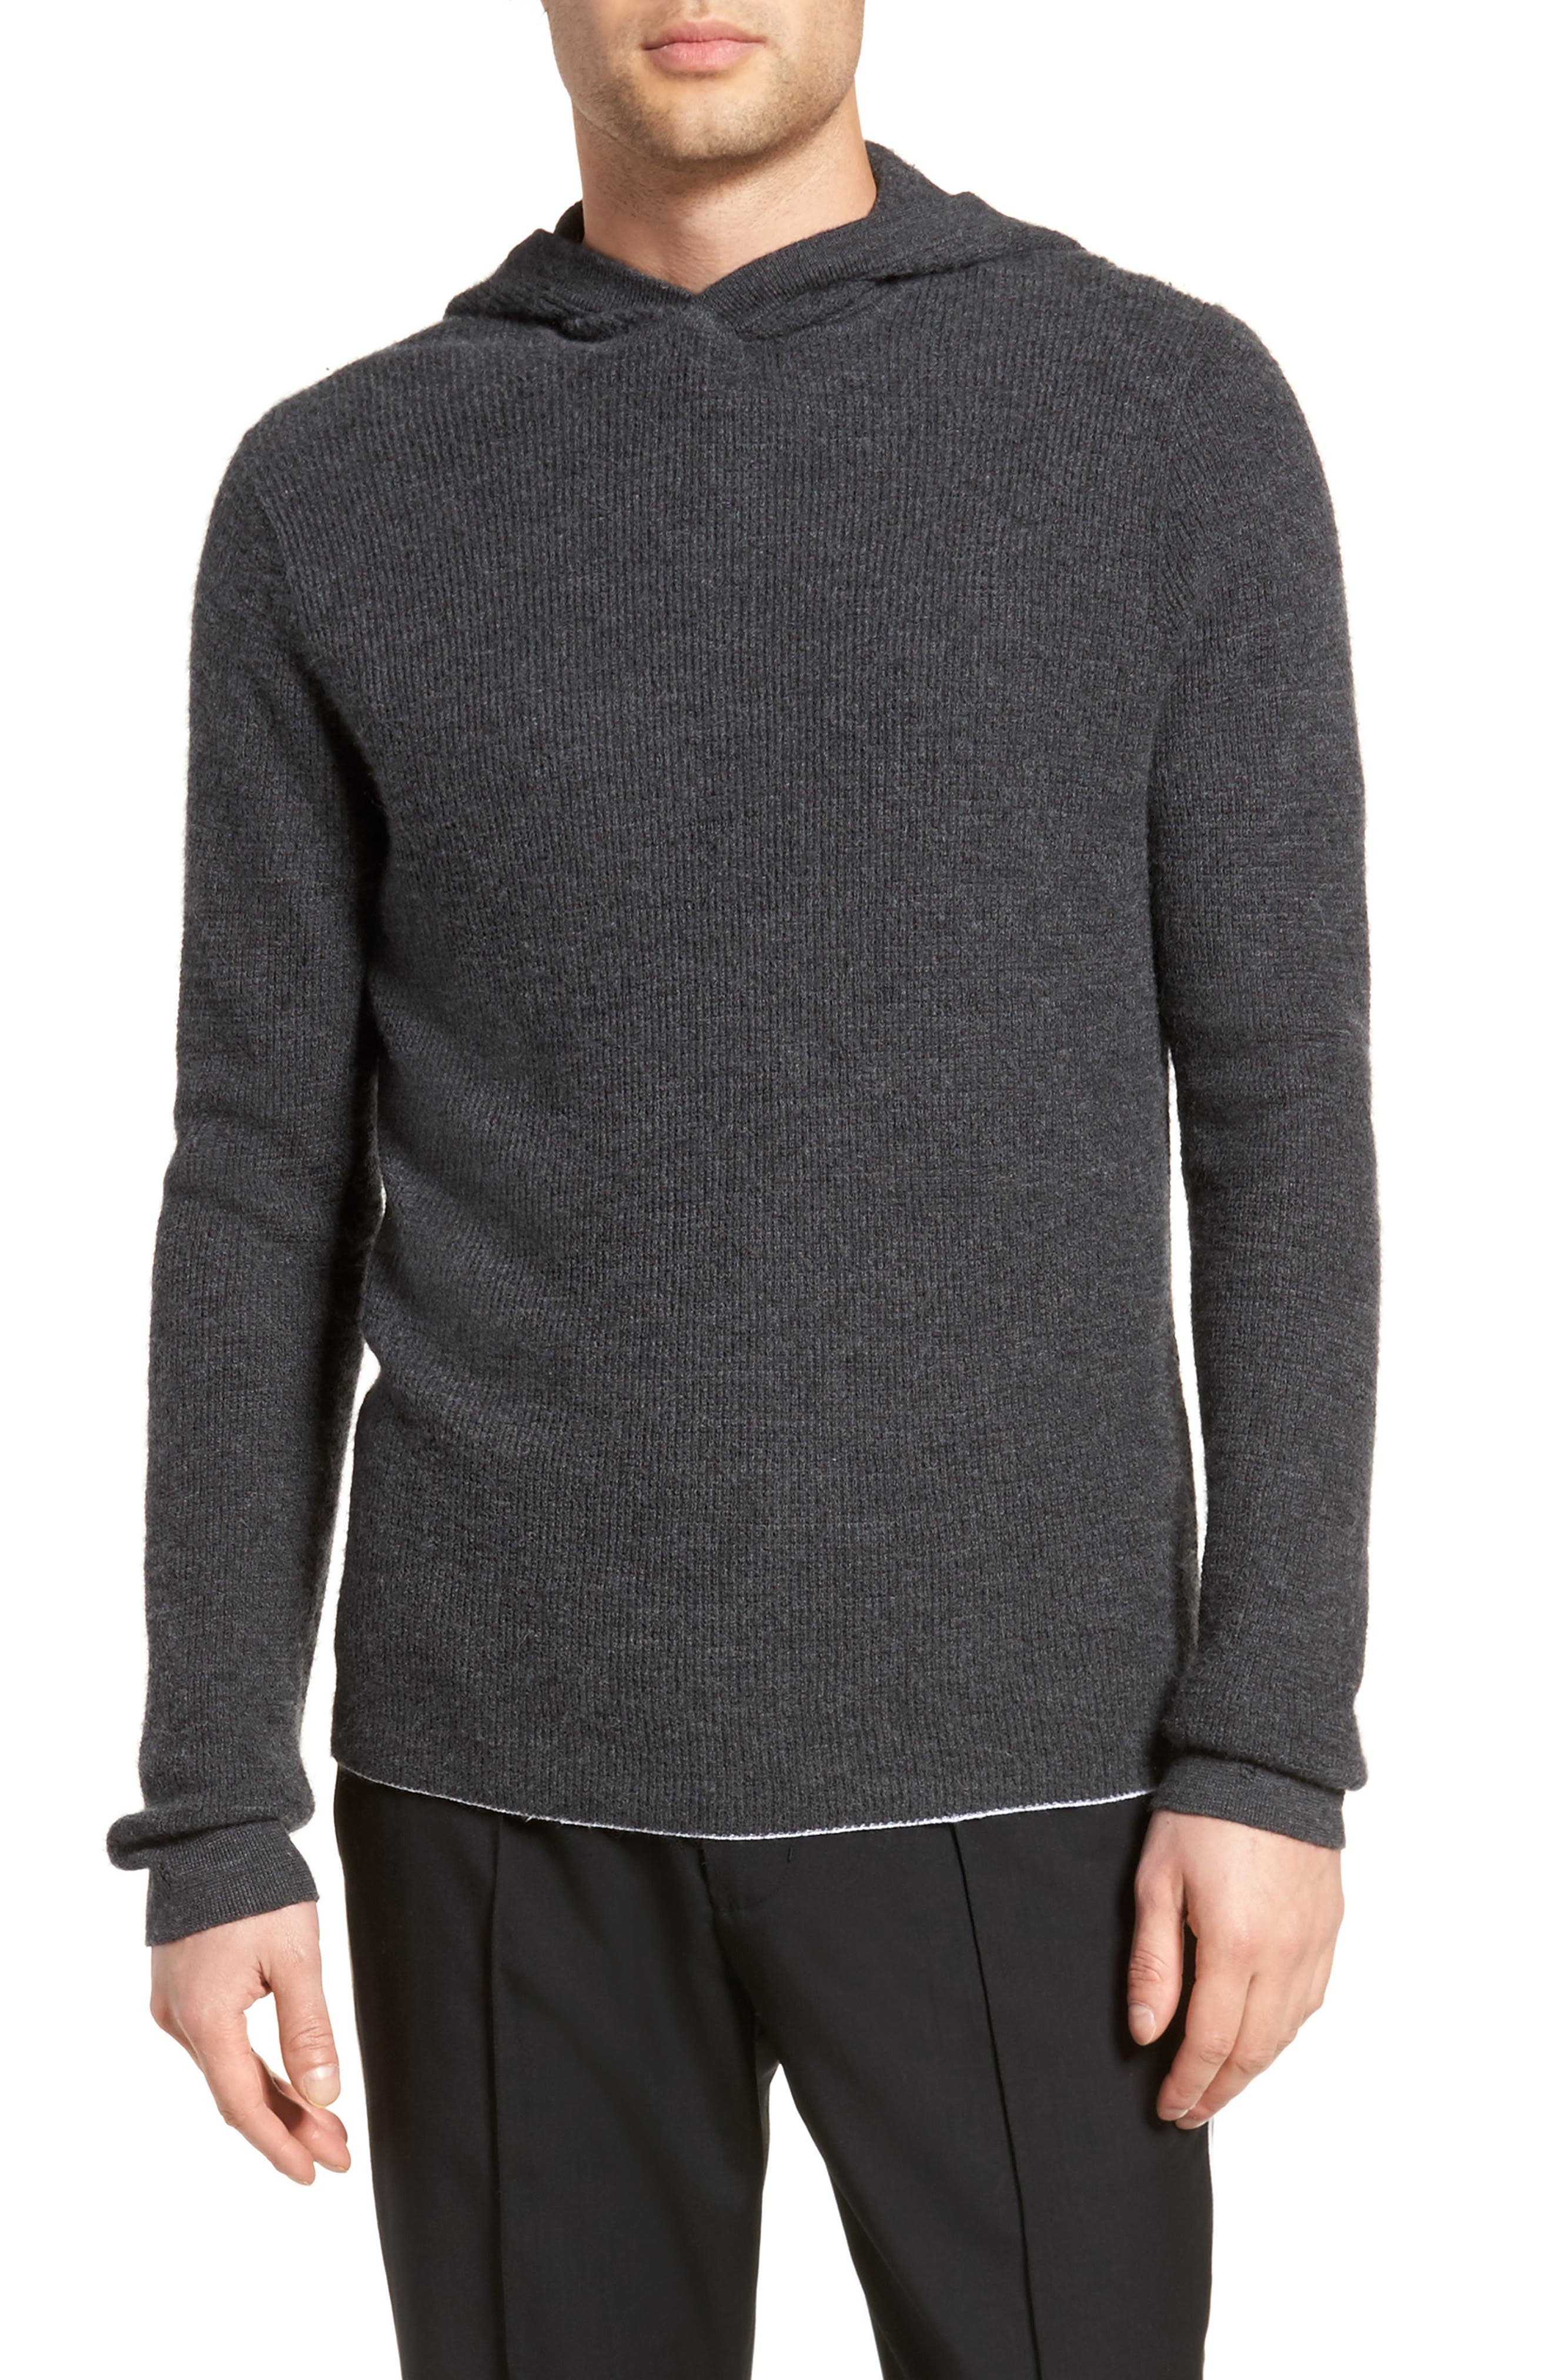 Thermal Knit Cashmere Hooded Sweater,                             Main thumbnail 1, color,                             020